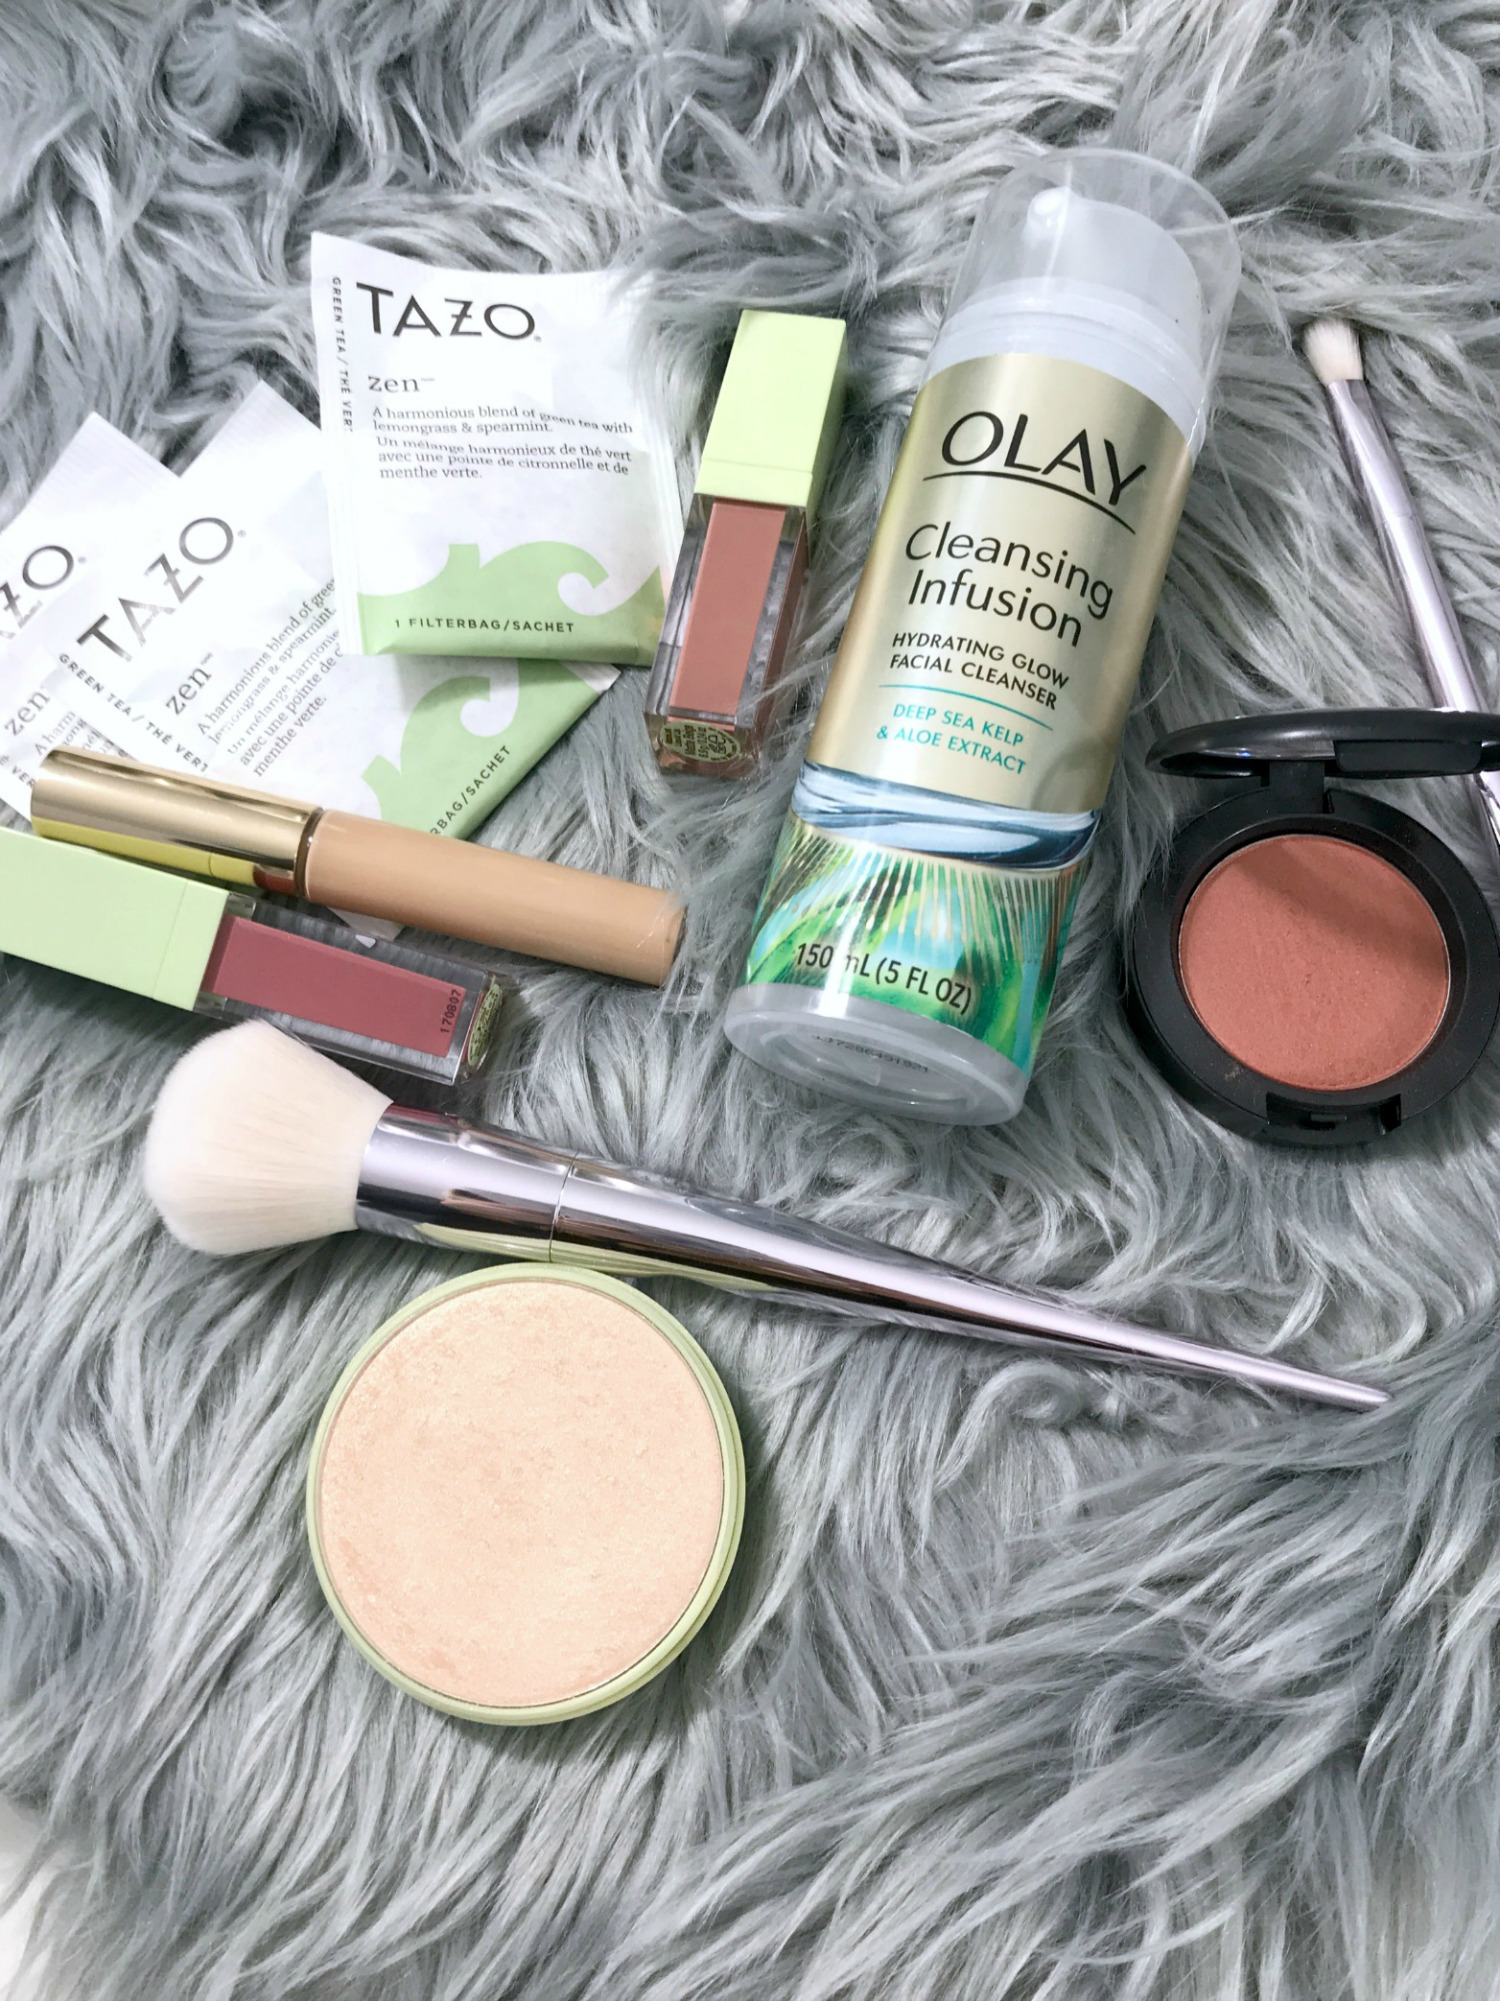 Time To Glow Up | New Beauty Habits For 2018 With Olay New Cleansing Infusions